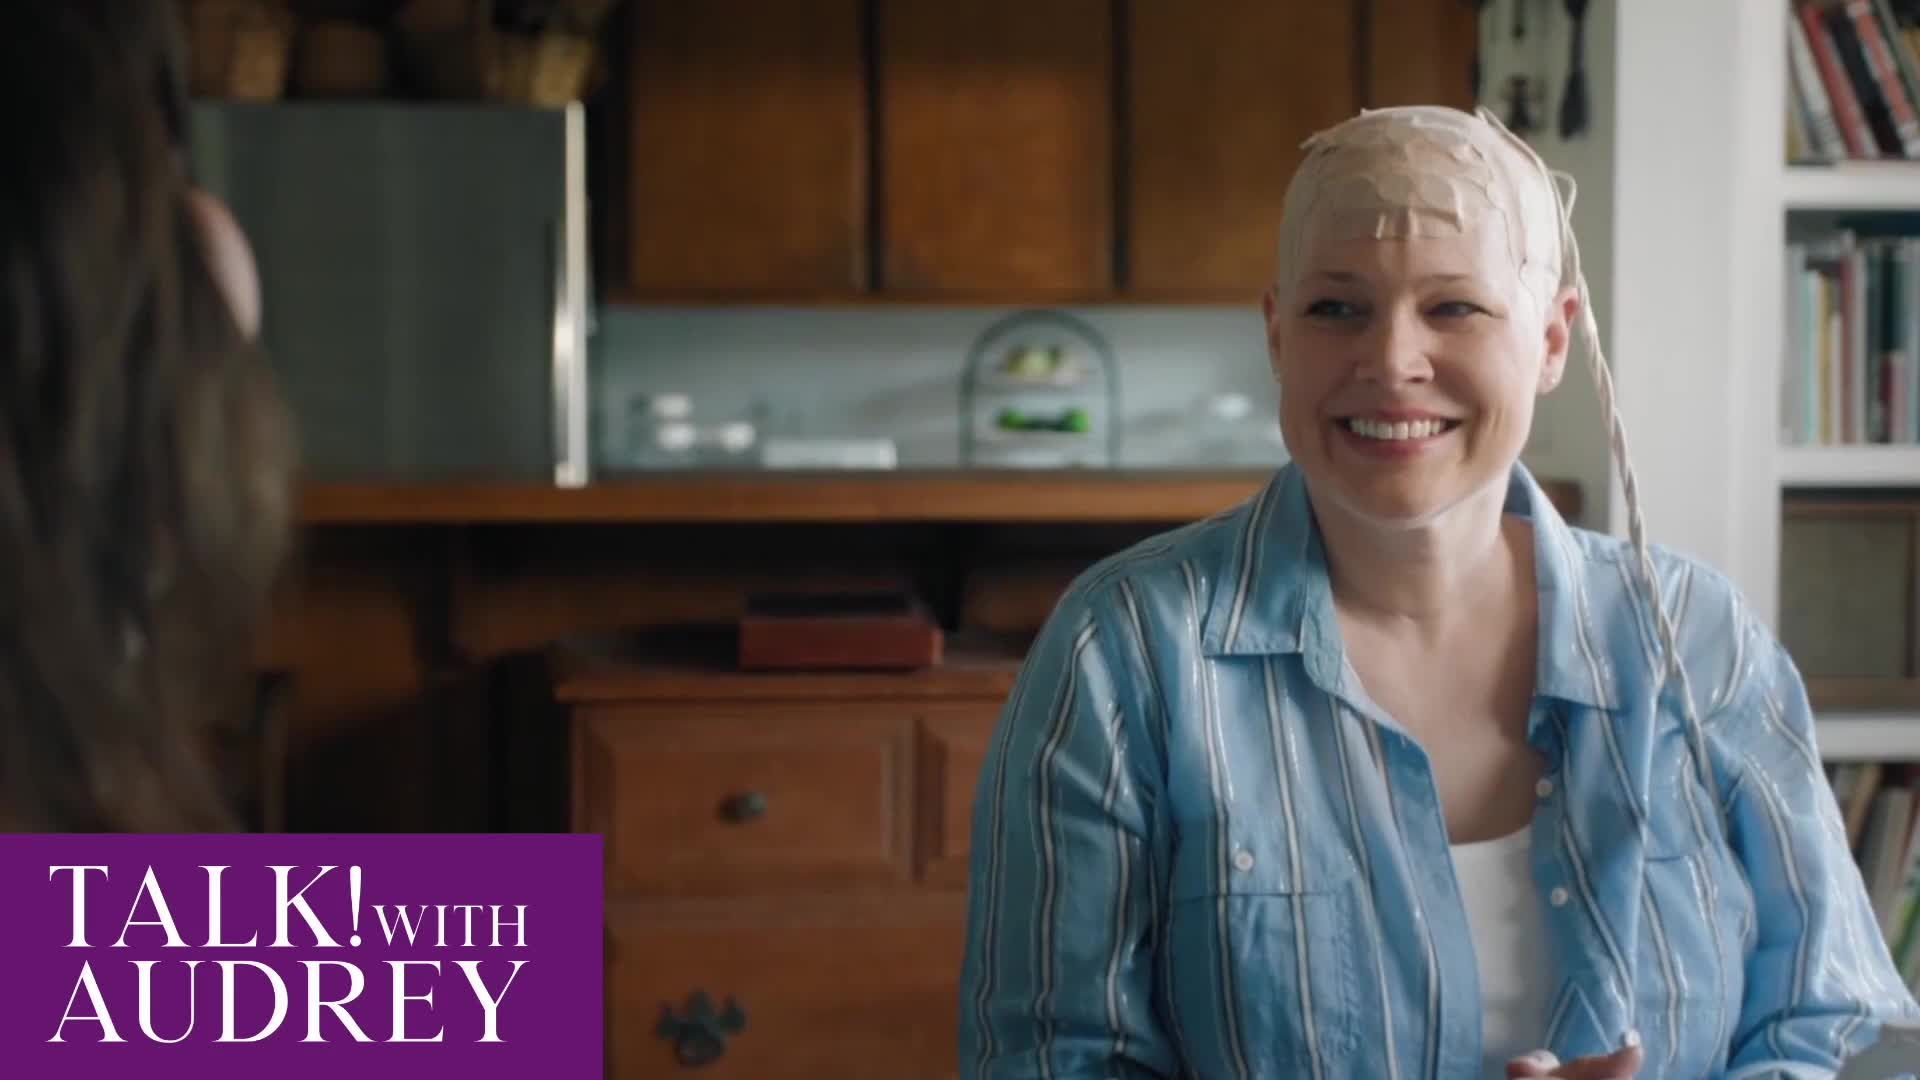 TALK! with AUDREY - Raising Awareness of Glioblastoma and The Latest Treatments and Technology